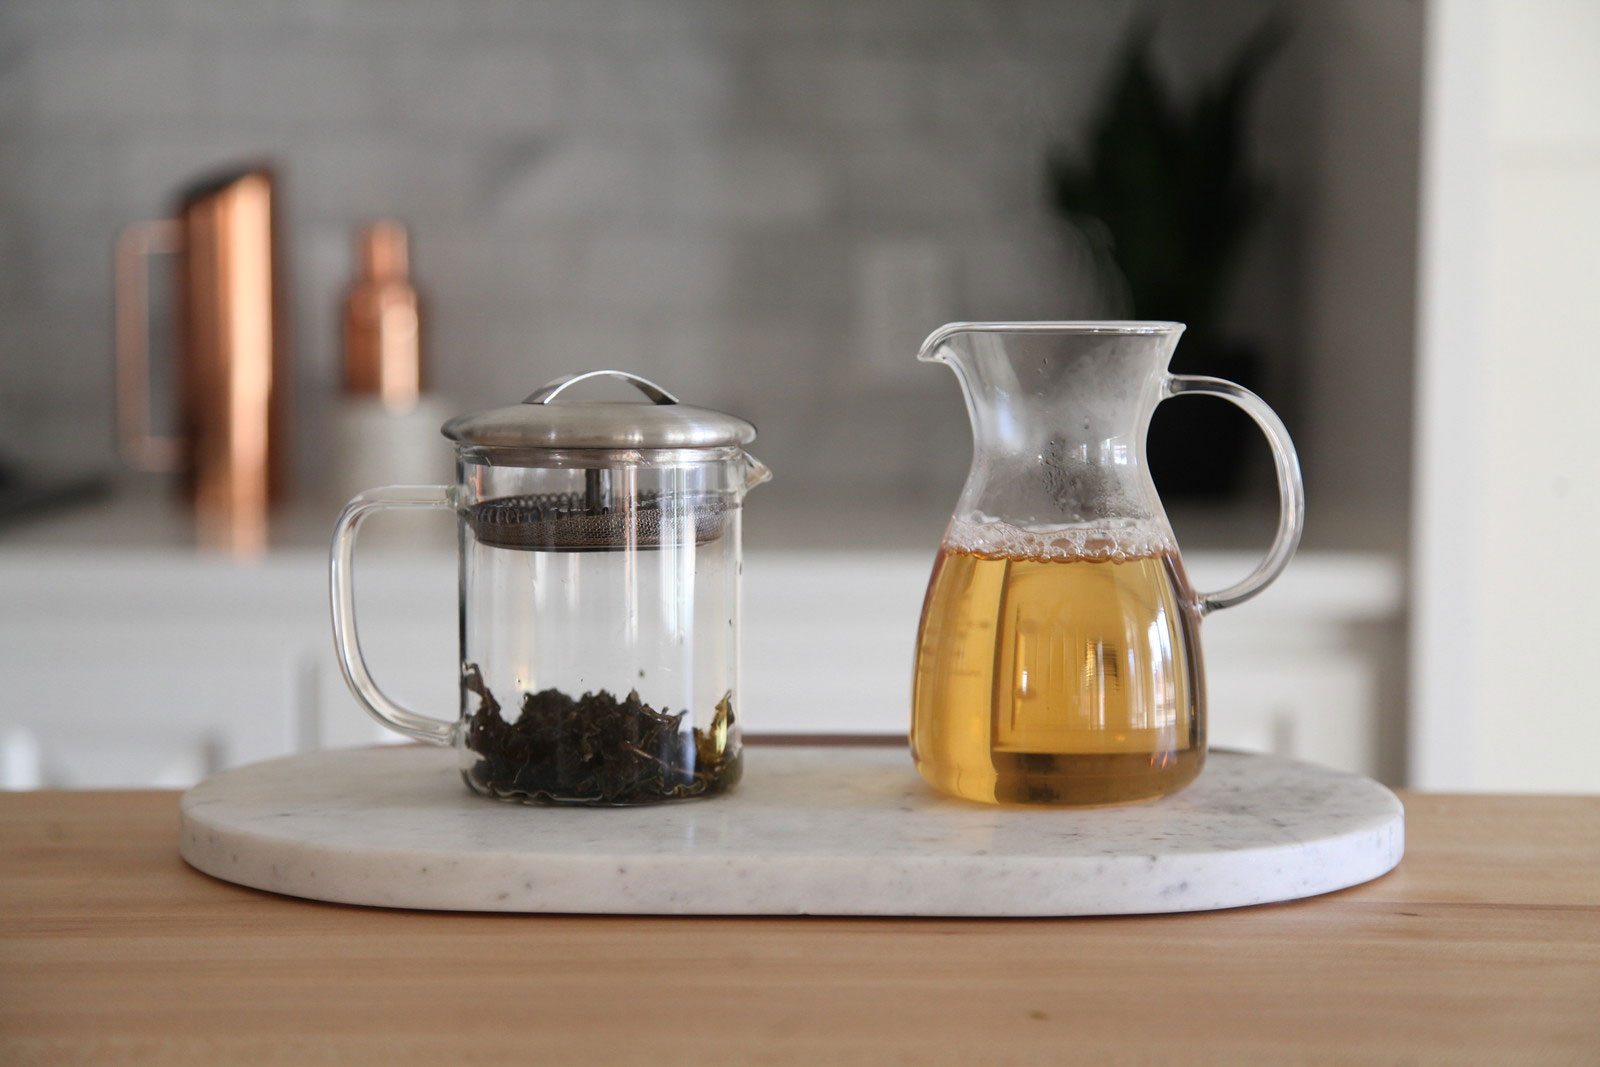 Aged Heart Oolong brewed tea